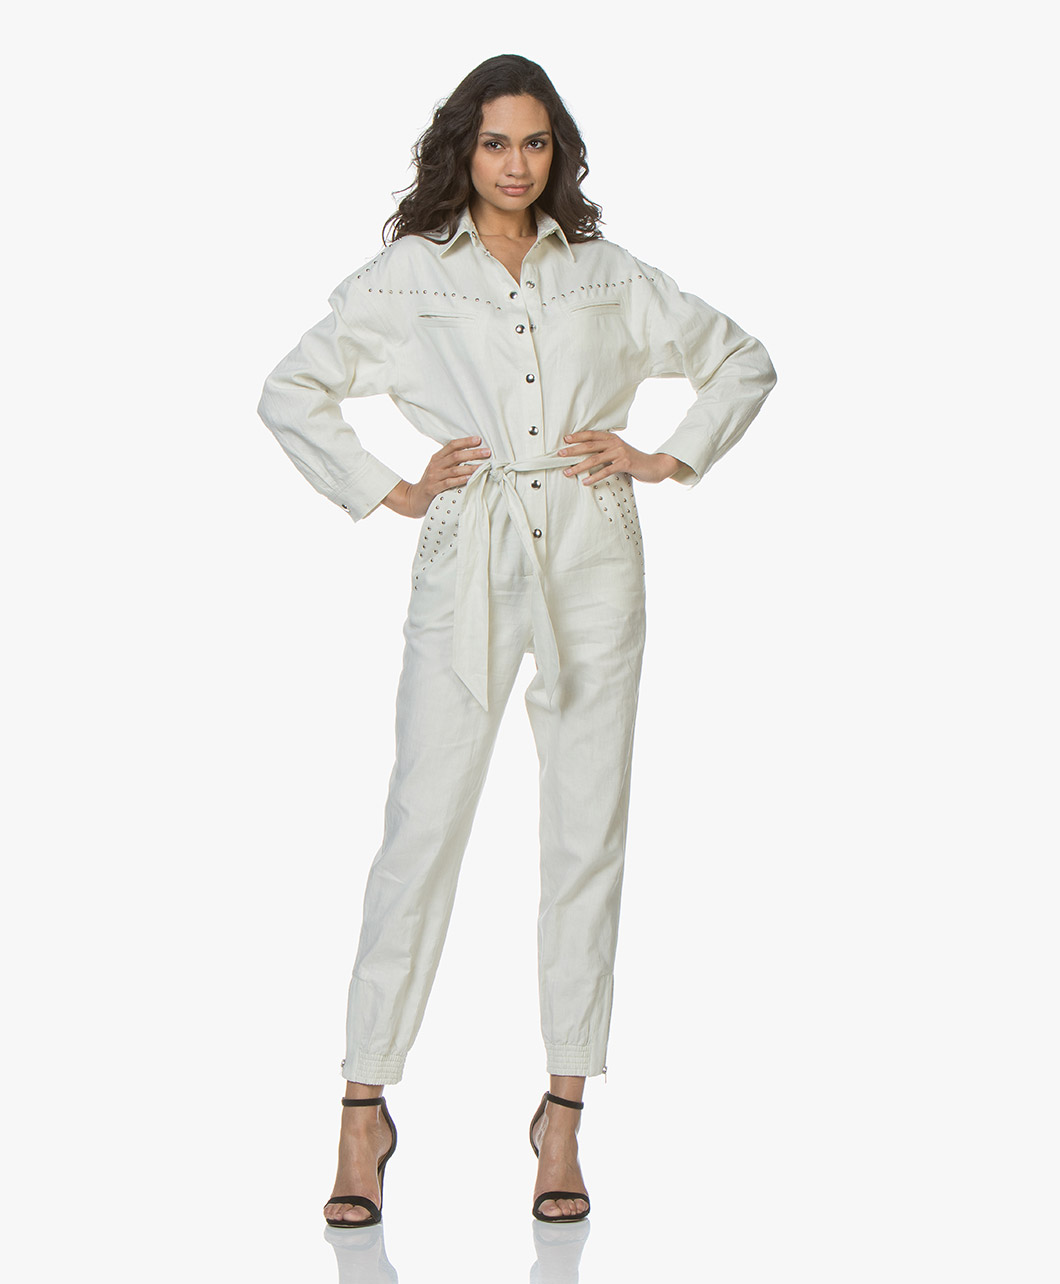 93248d32e37 IRO Nicely Linen Blend Jumpsuit - Ecru - nicely